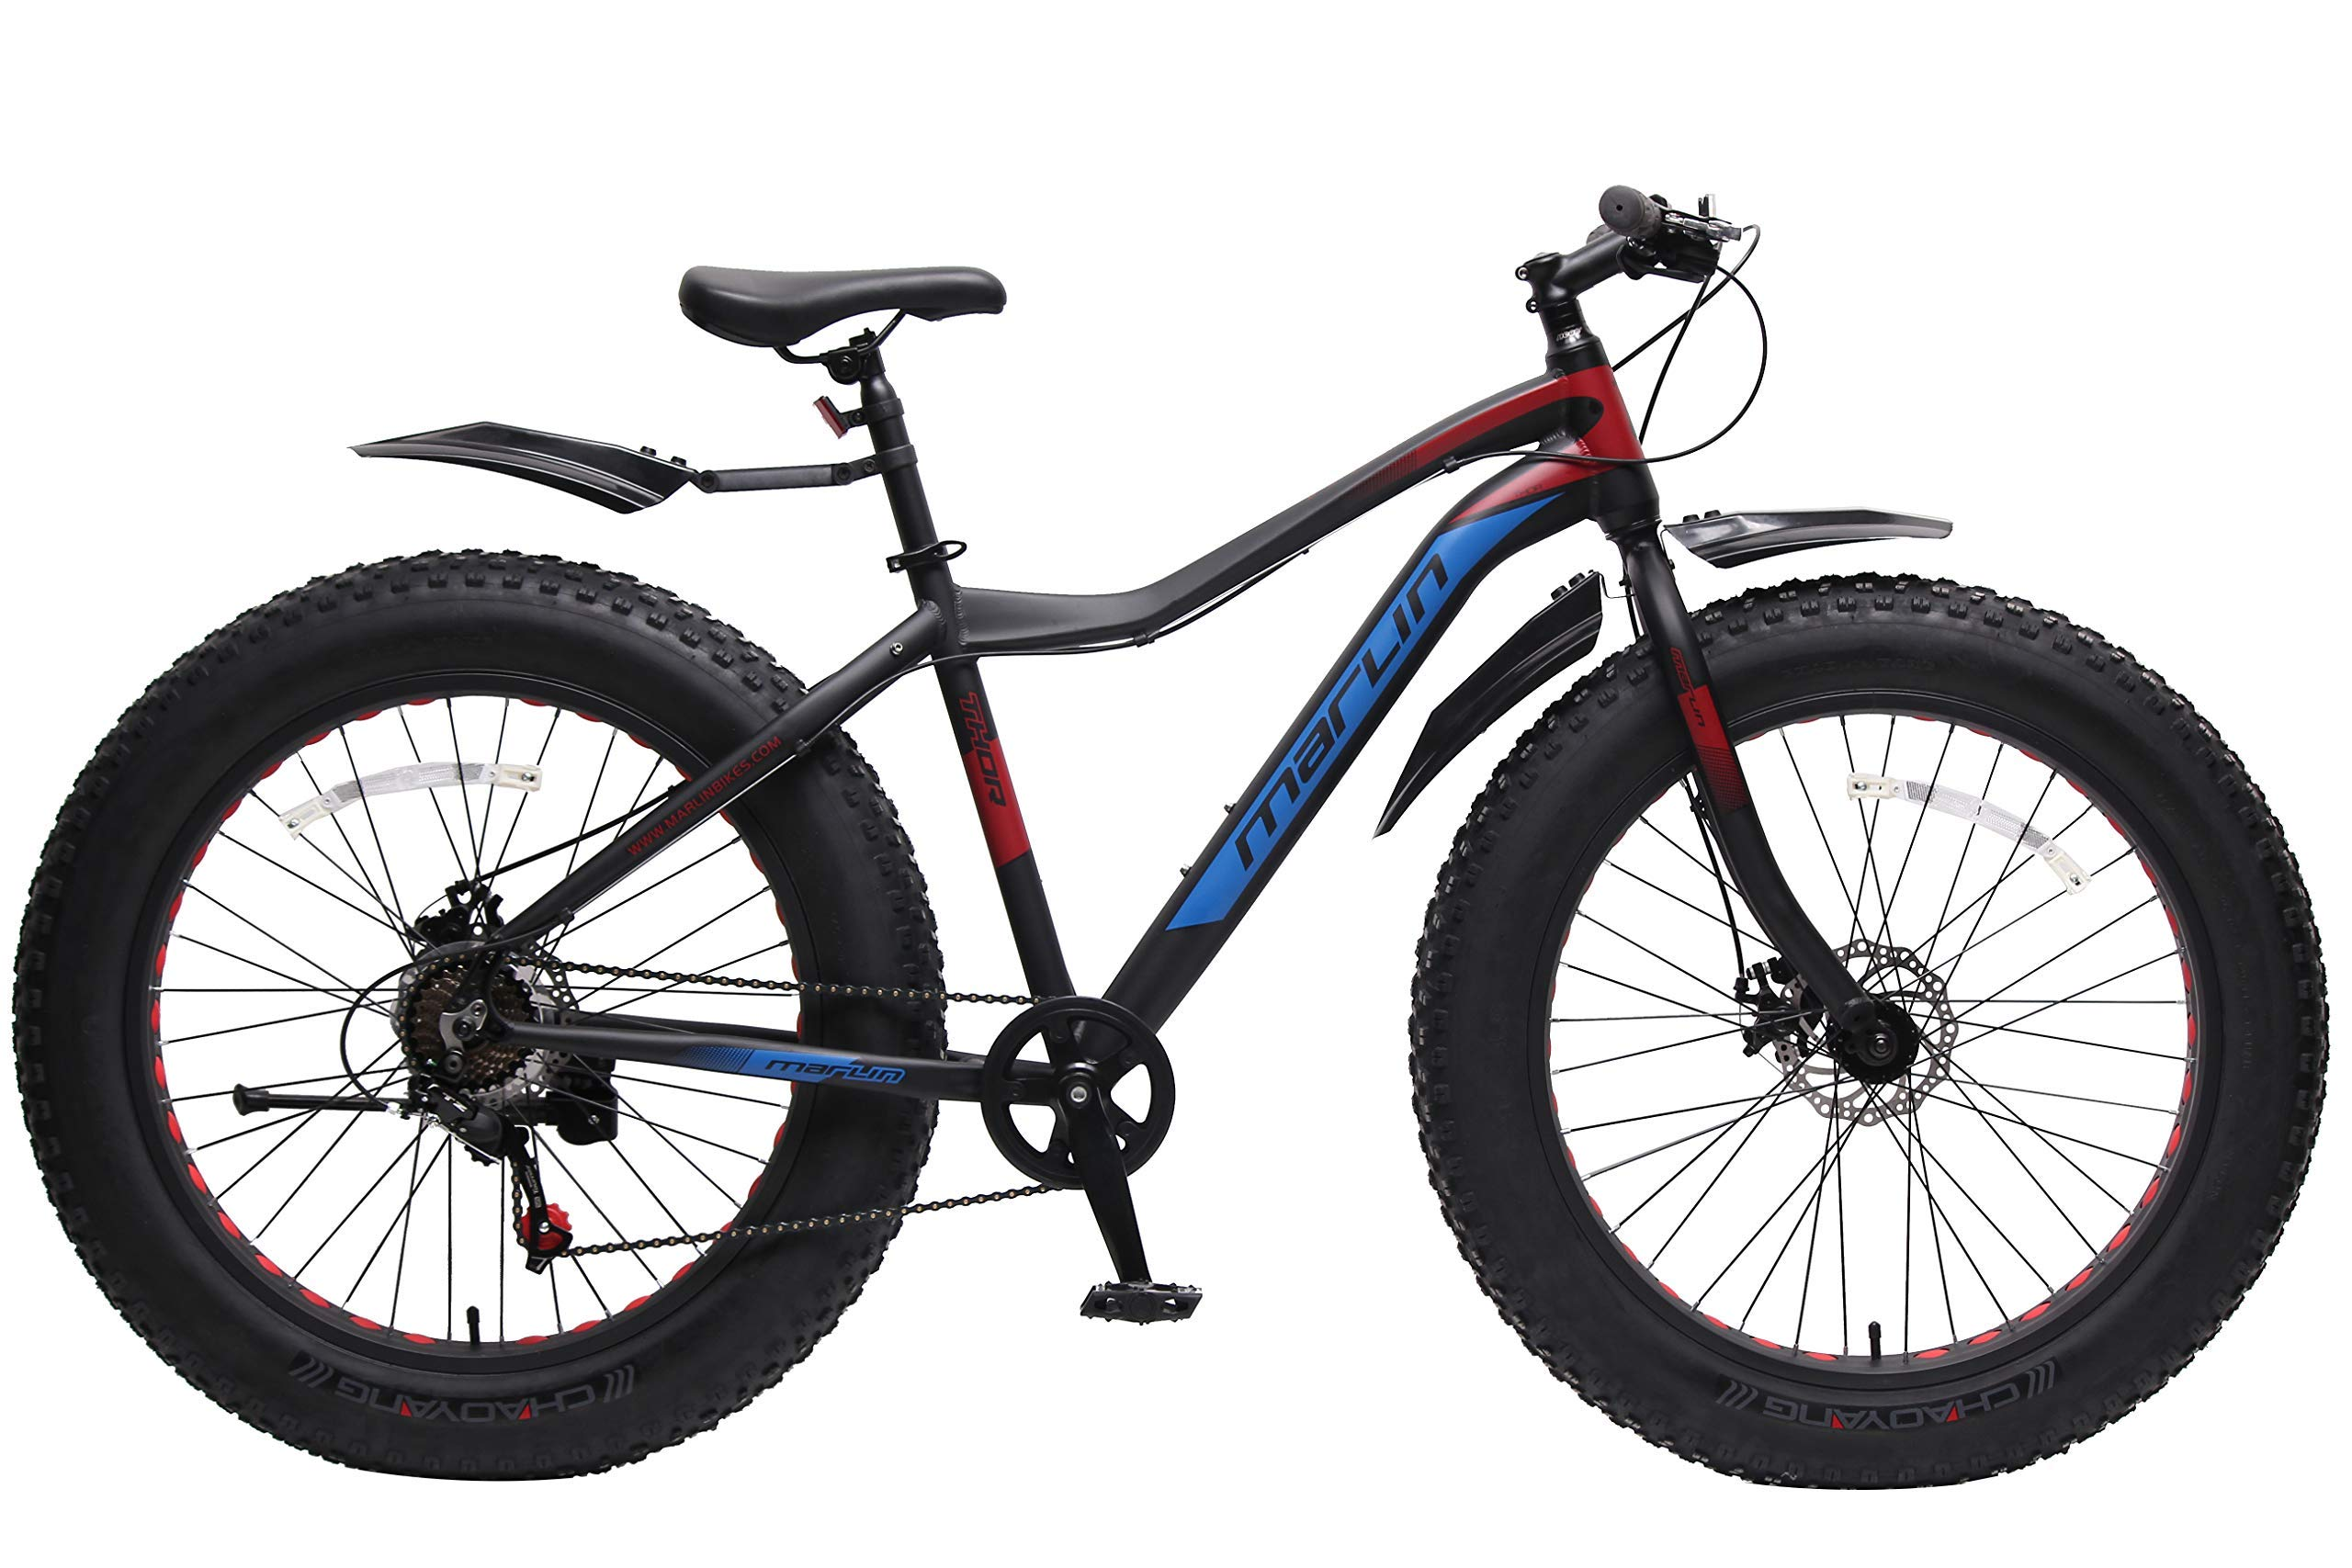 Marlin Bikes Aluminum-Alloy Fatbike Men Thor Bicycle, 26X4.9 Inches (Thor Black) product image